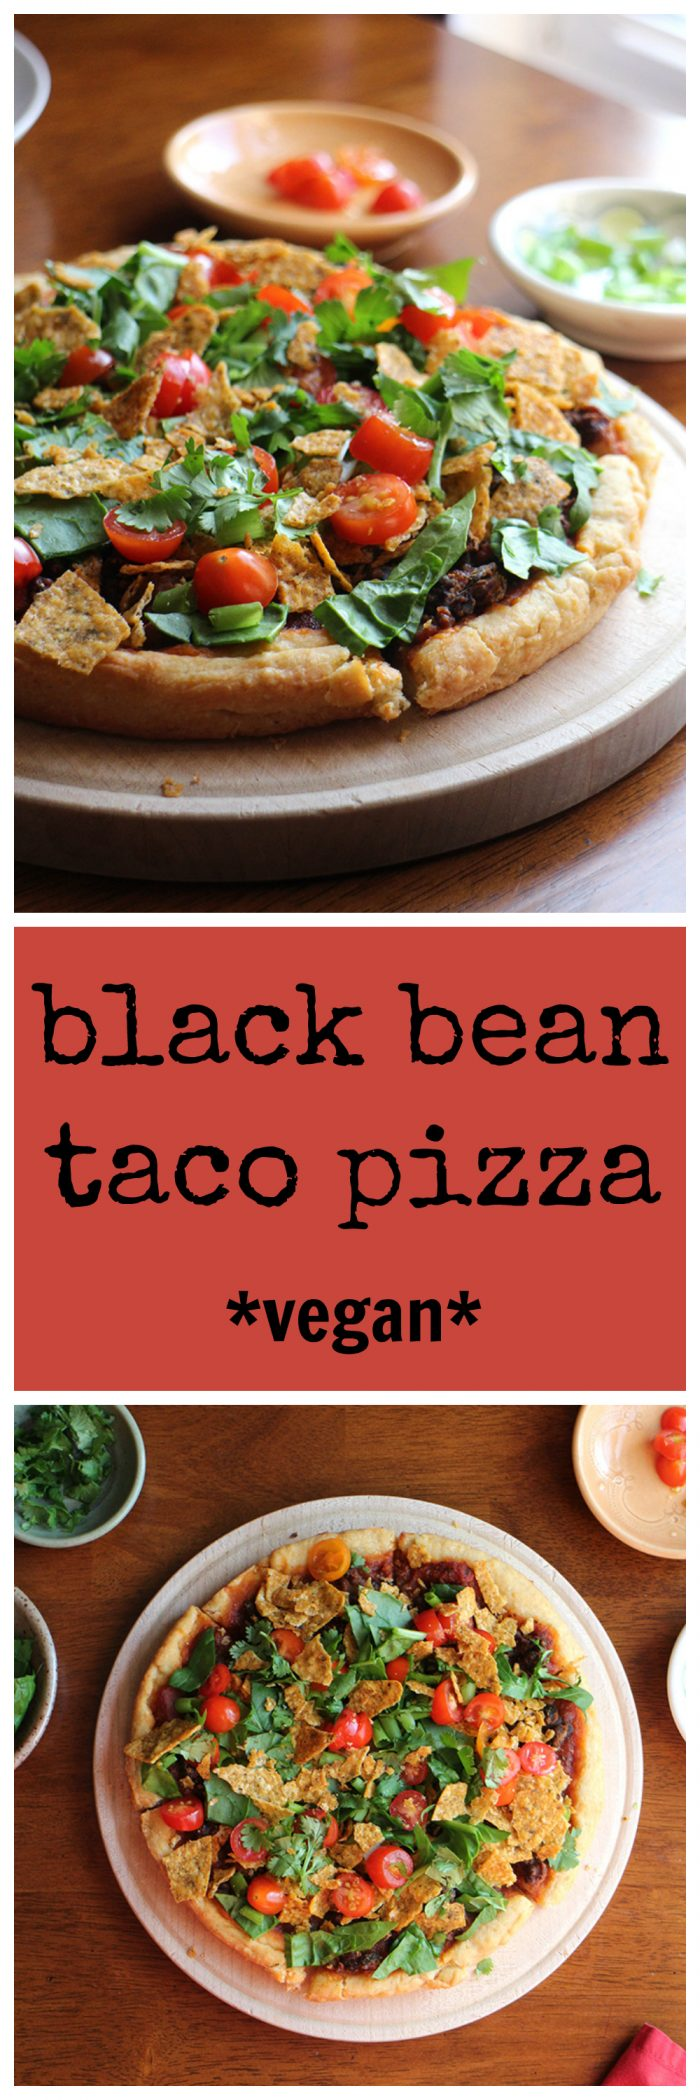 Black bean taco pizza - vegan comfort food & a wonderful weeknight meal | cadryskitchen.com